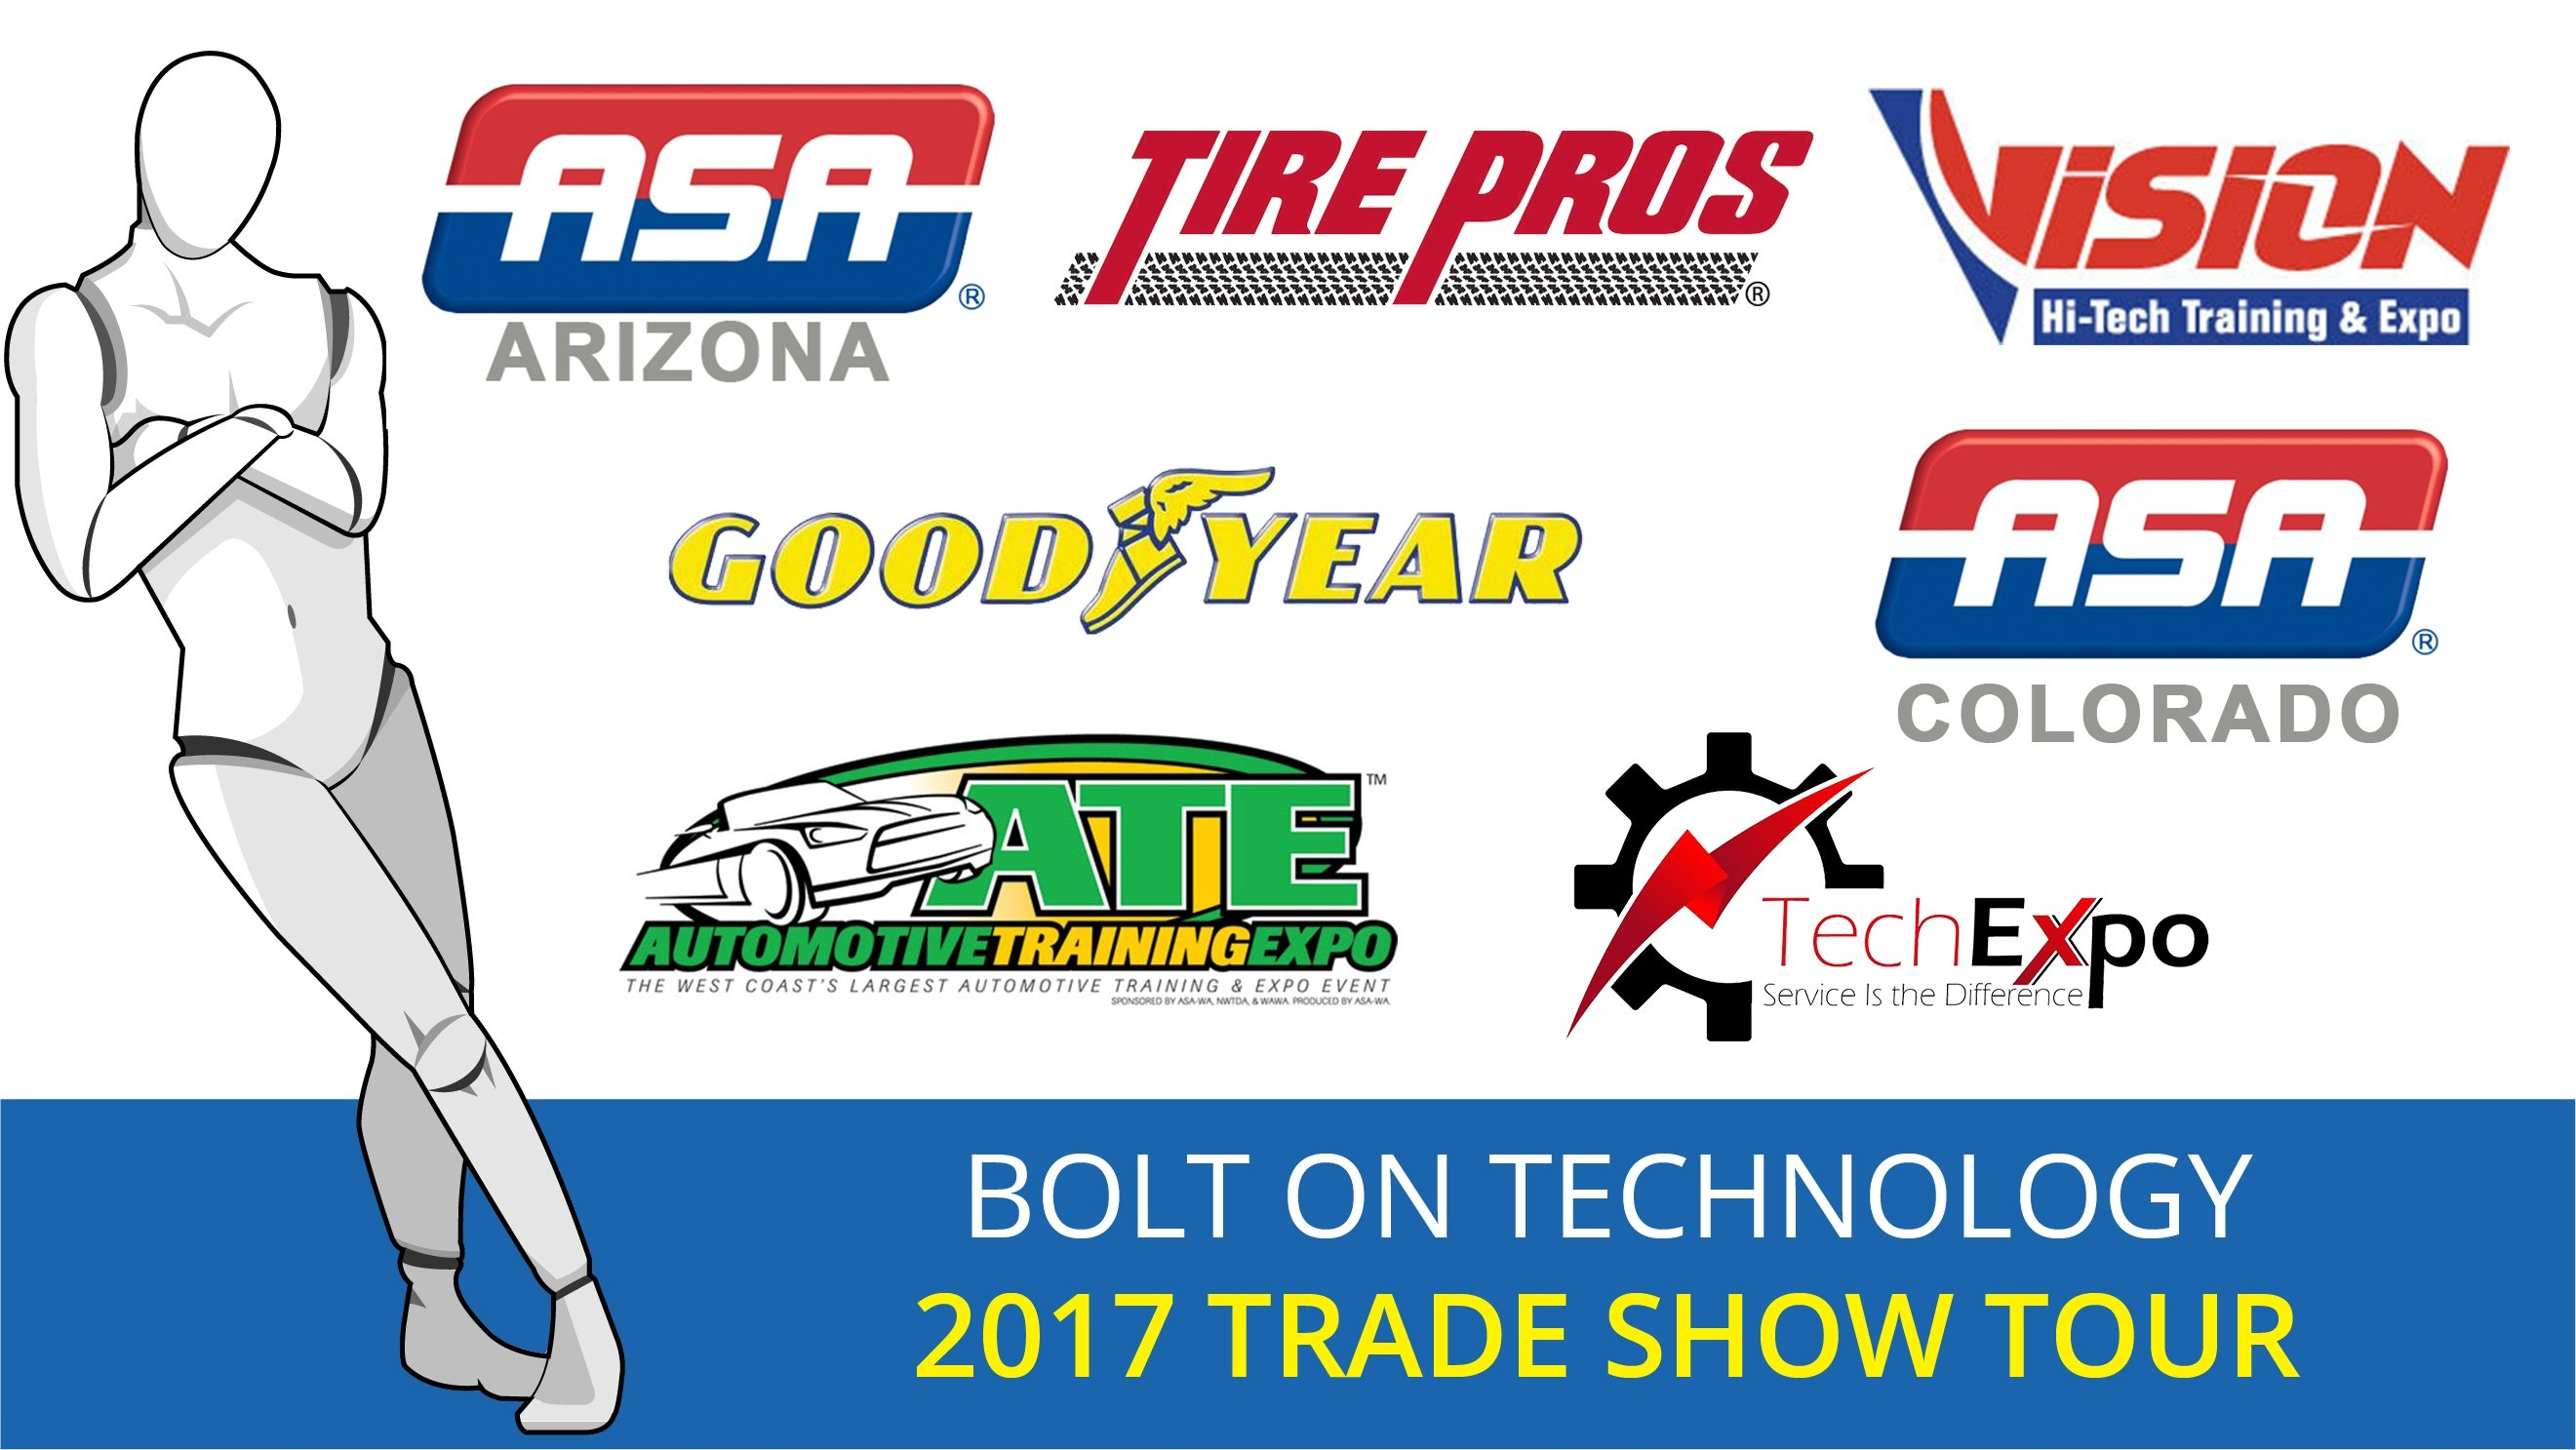 [Updated] 2017 Trade Show Schedule